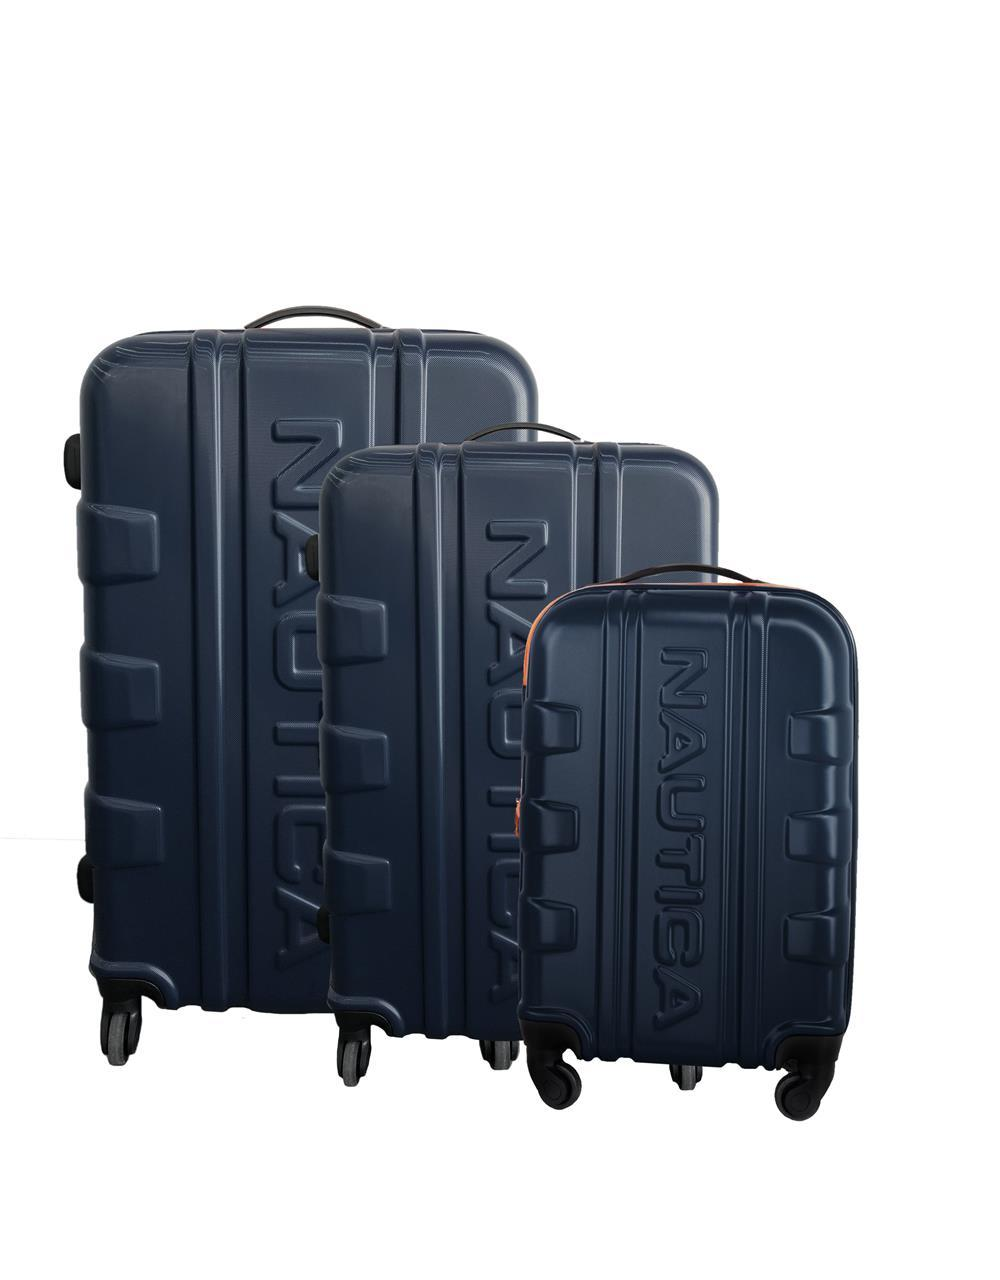 Clipper 83 - 3 Piece Hard Side Luggage - Navy/Orange Luggage Nautica